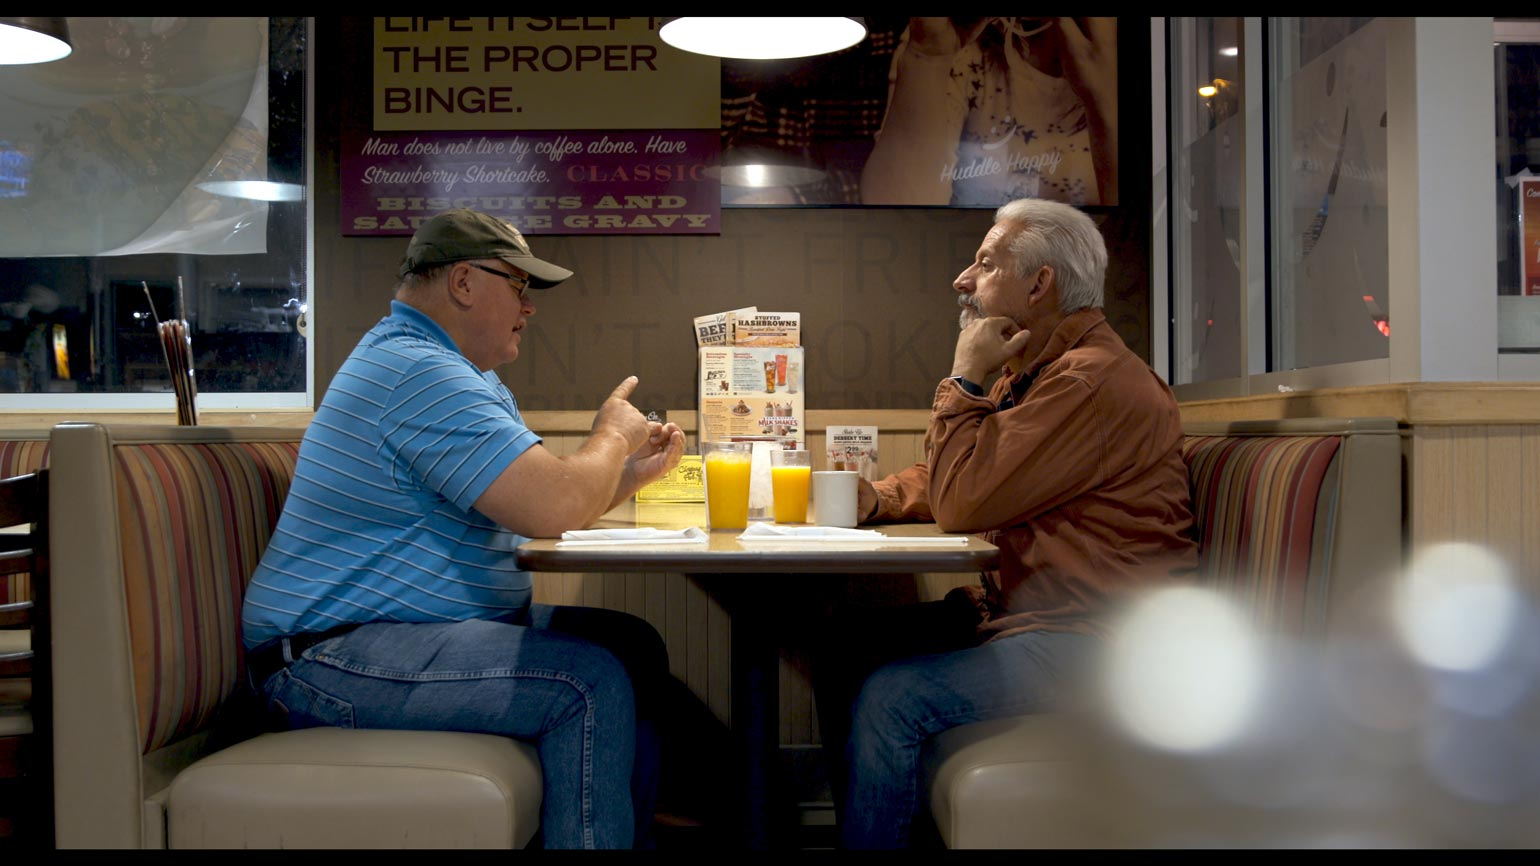 Two men sitting in a booth at a cafe while they have a conversation